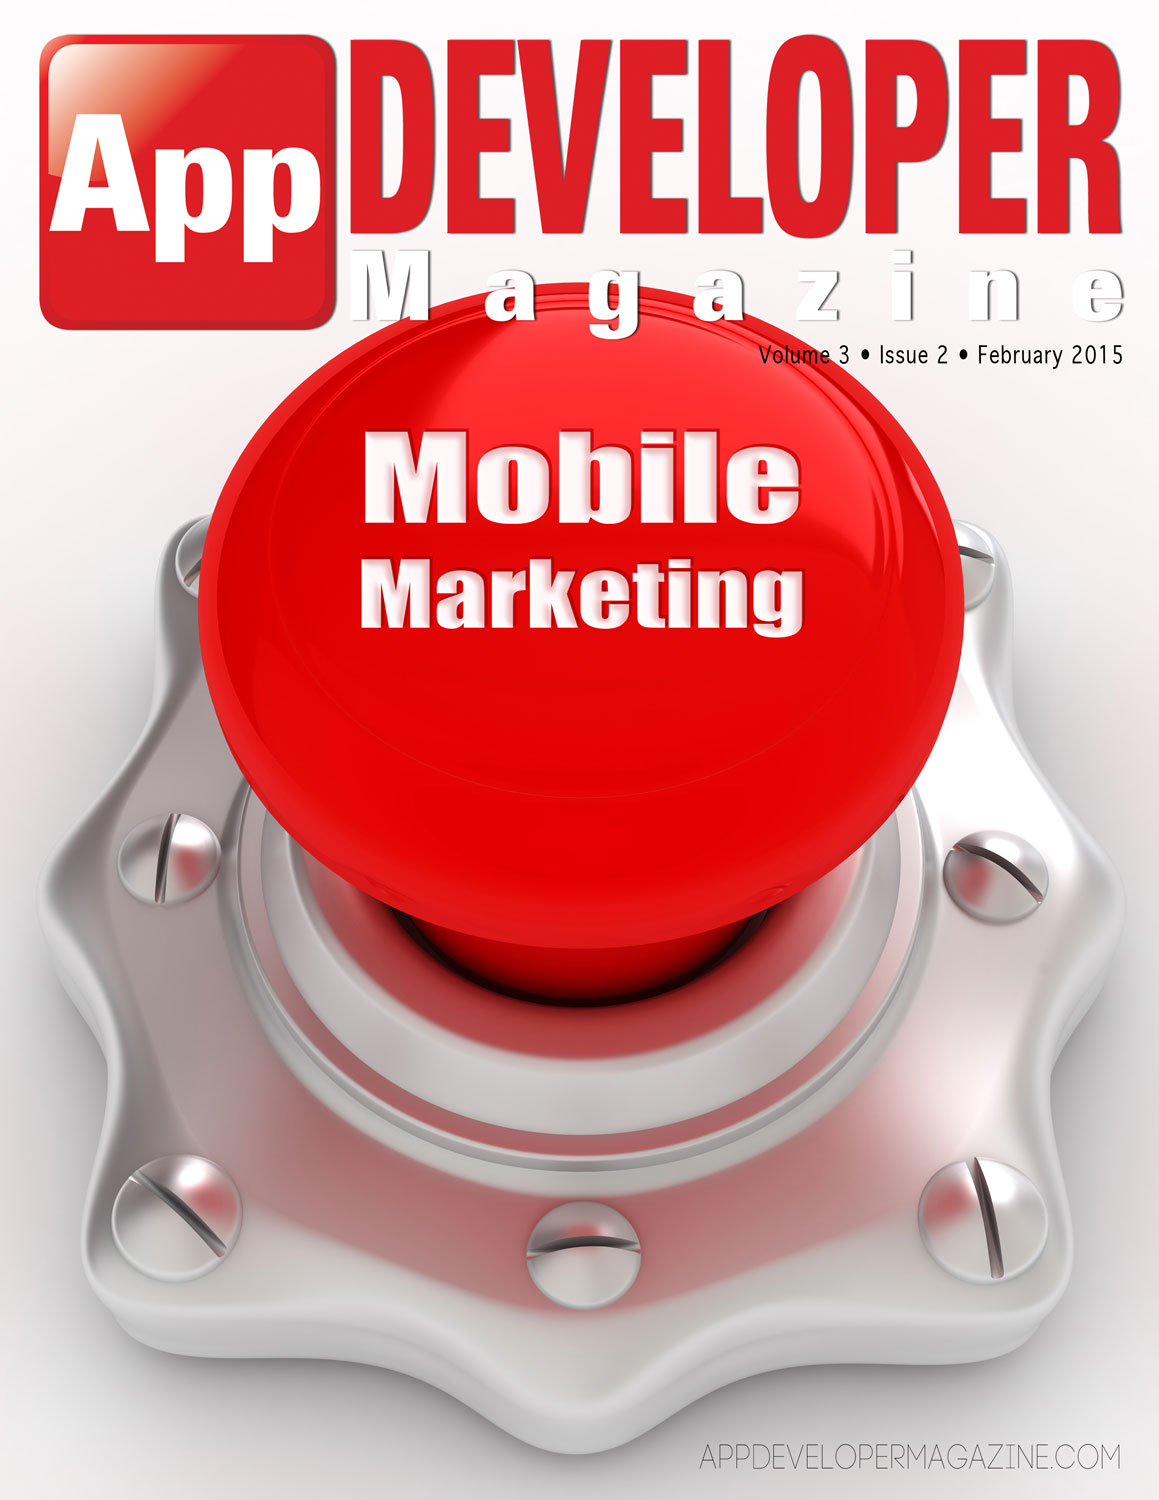 App Developer Magazine February 2015